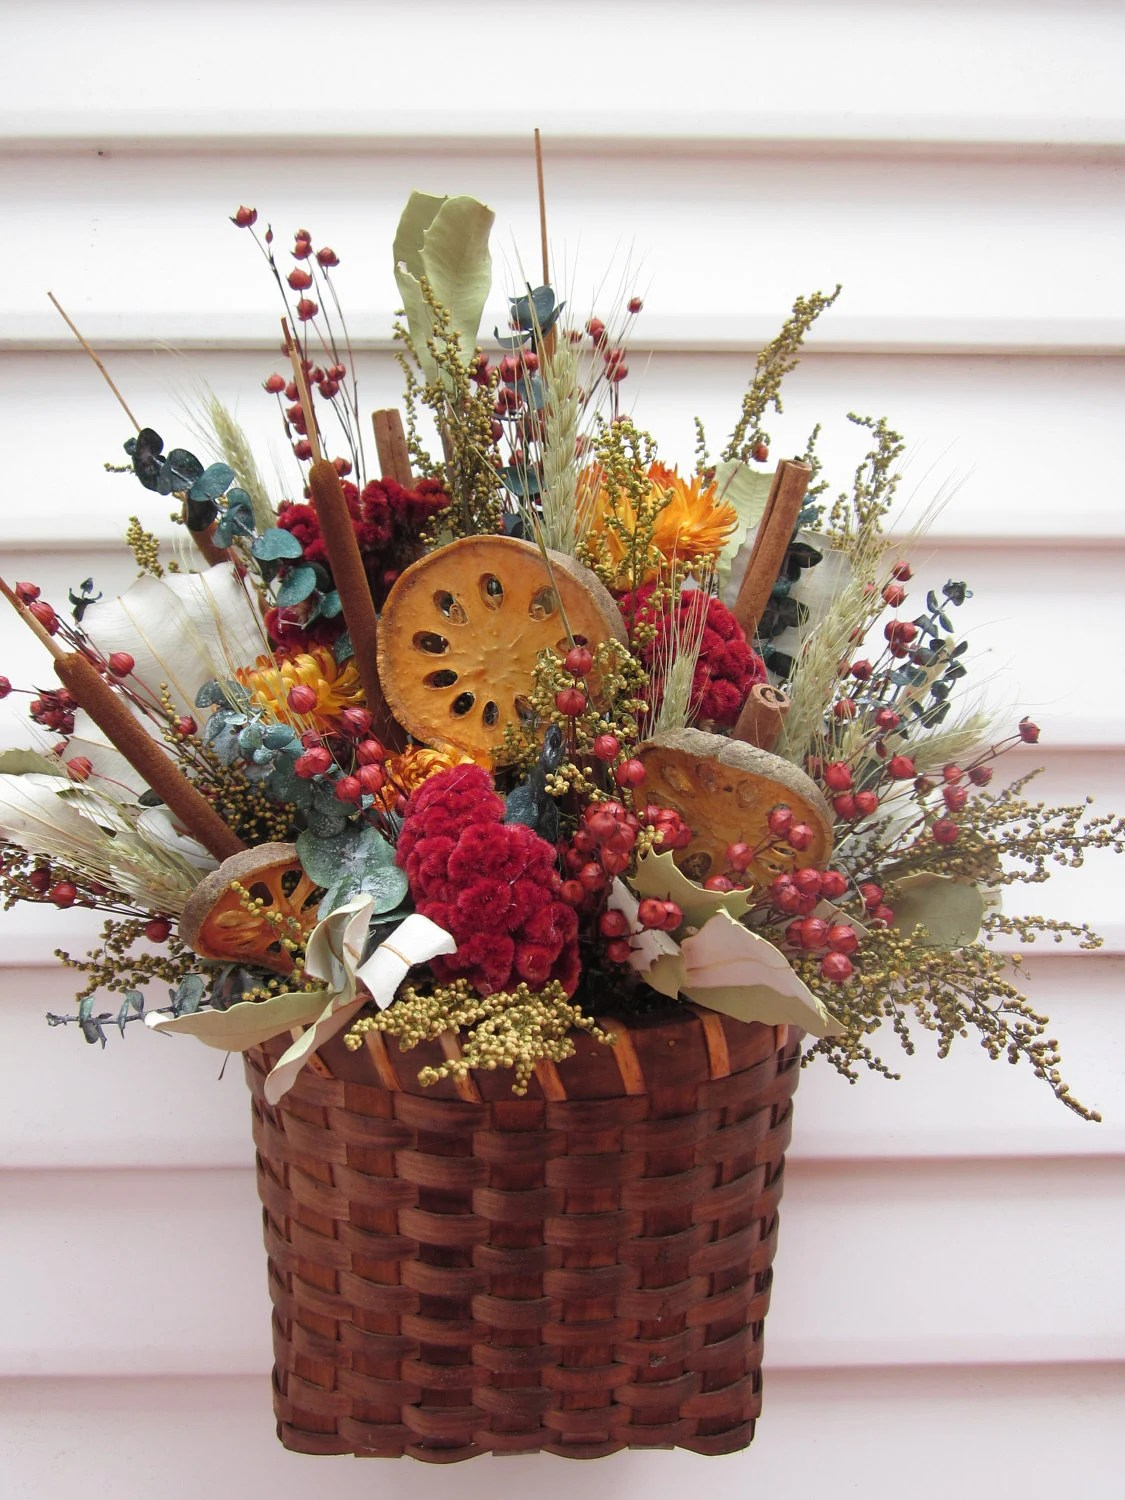 Wall Decor Basket Dried Flower Arrangement With by ... on Decorative Wall Sconces For Flowers Arrangements id=24458